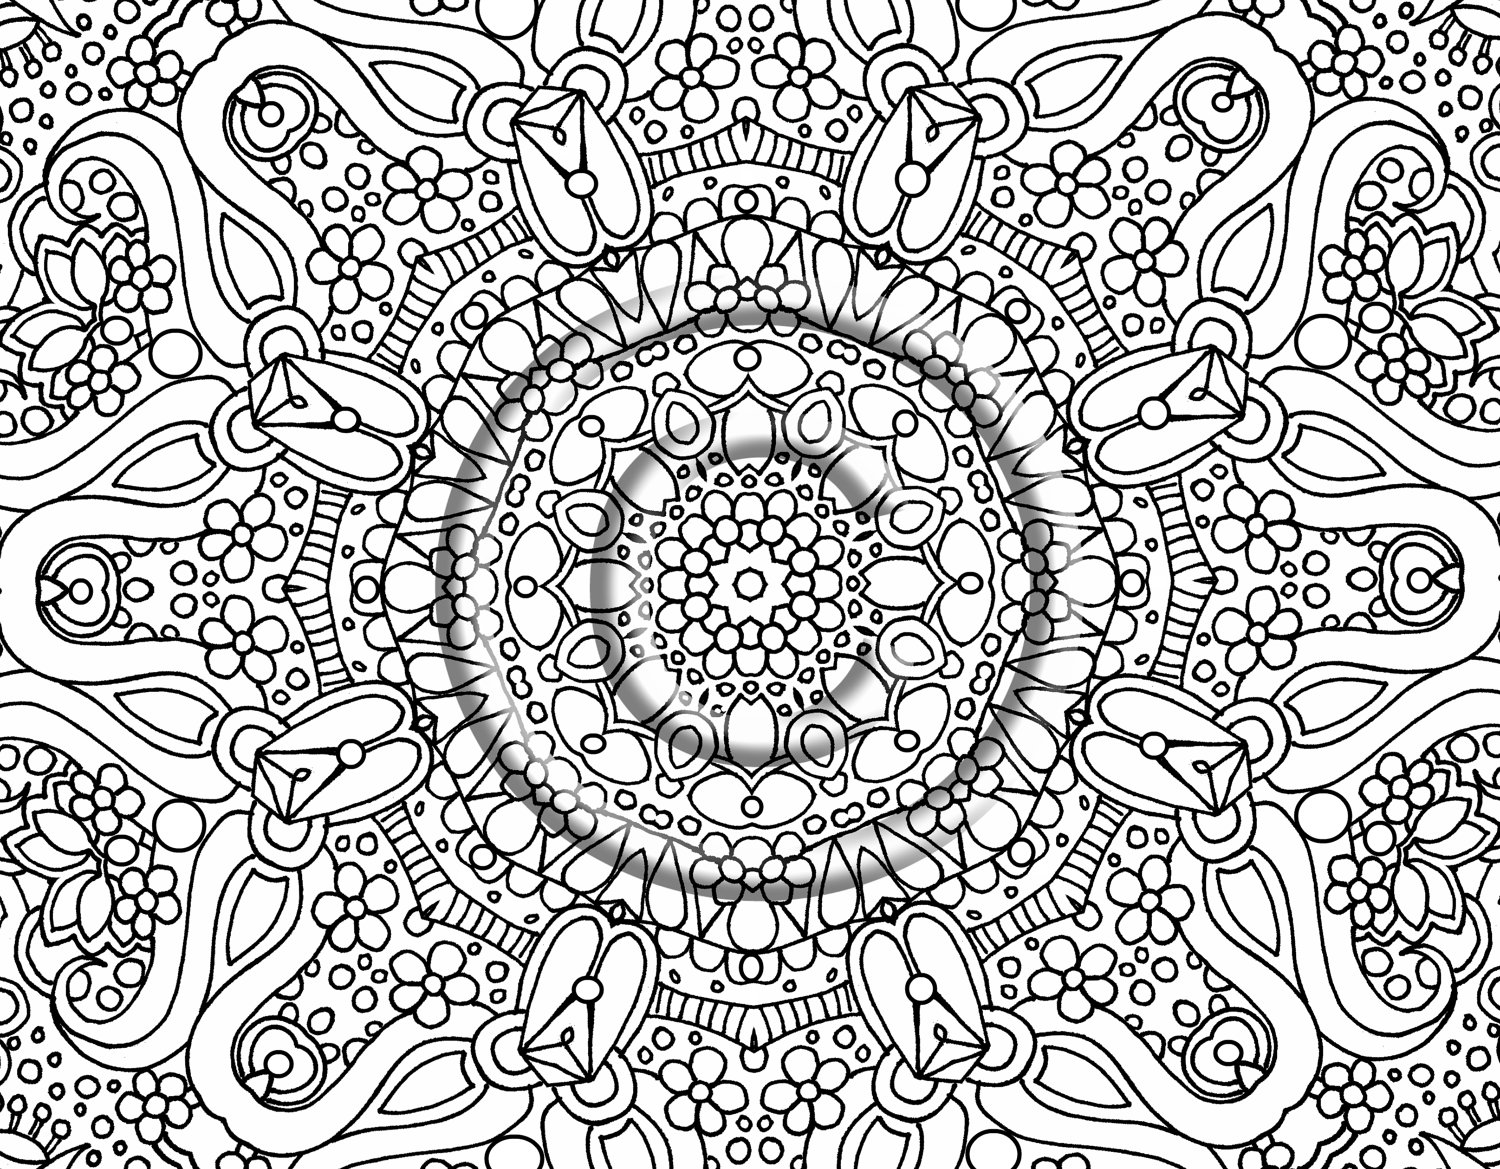 patterns to color in coloring page world paisley flower pattern portrait color in to patterns